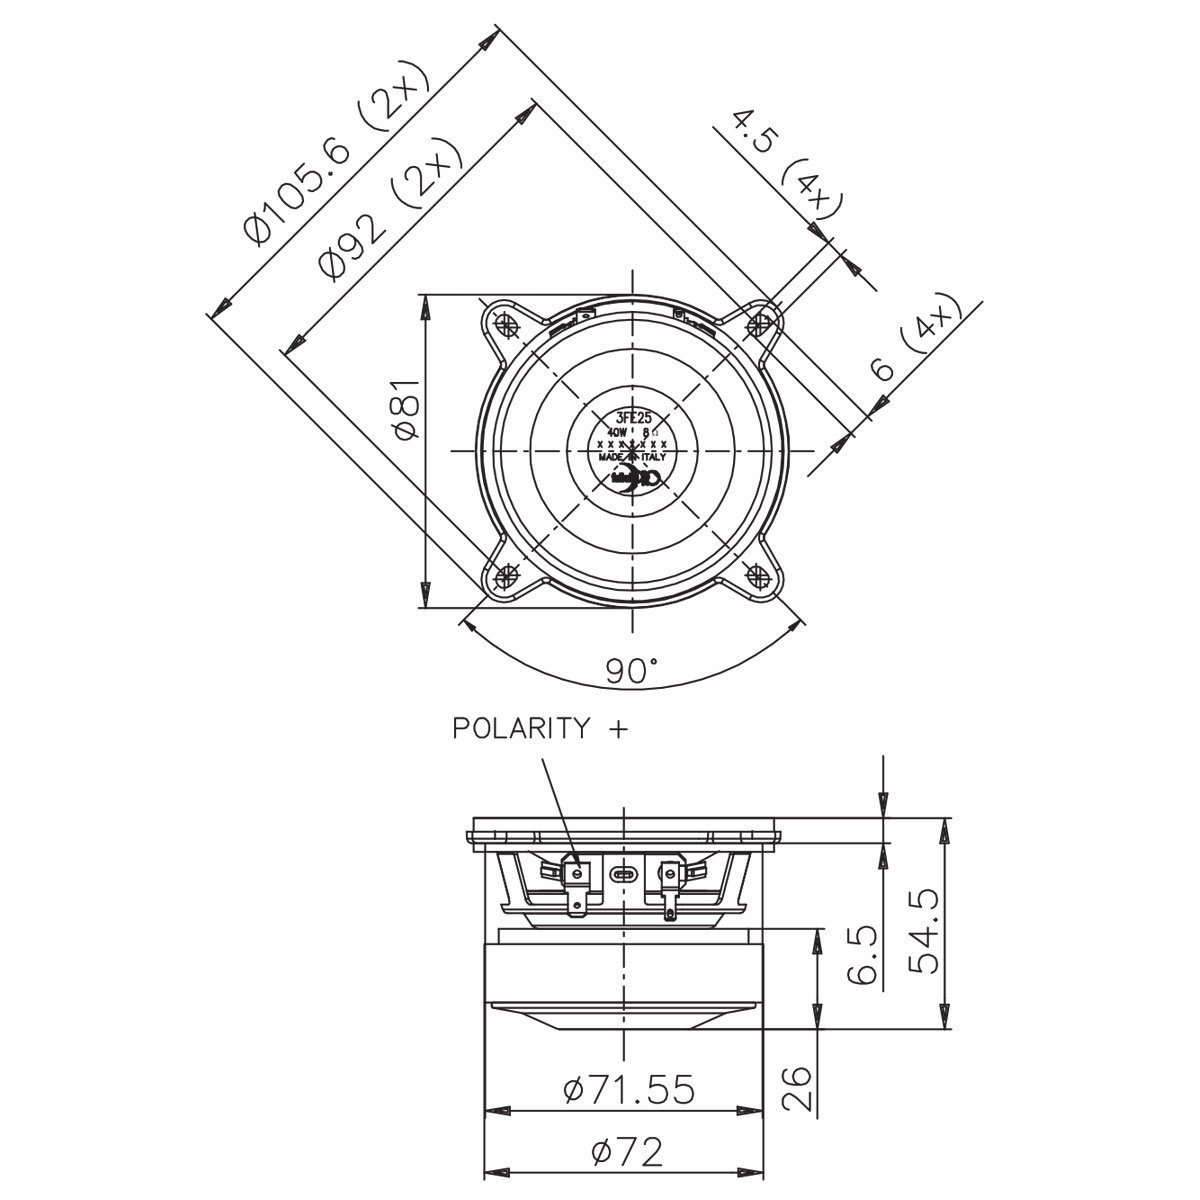 Kicker  p 4 Ohms 10 Wire Diagram on kicker l7 wiring diagram